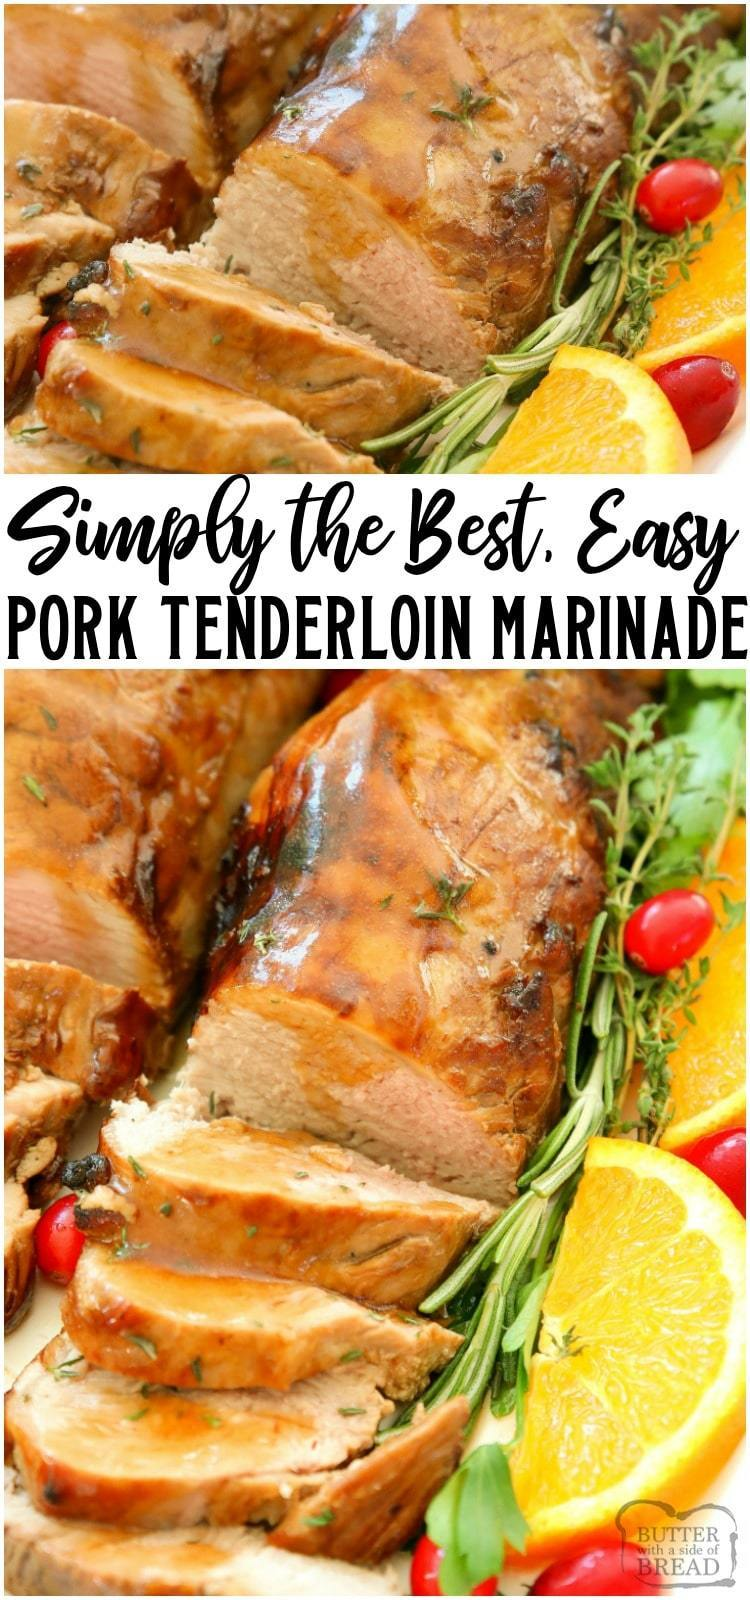 Holiday Roast Pork Tenderloin made EASY with this flavorful marinade! Simple festive pork dinner that looks elegant yet is SUPER EASY to make. The pork tenderloin marinade is just 5 ingredients, including a couple of cans of lemon lime soda! #pork #tenderloin #marinade #recipe #dinner #easydinner #holidaydinner #roastedpork #recipe from BUTTER WITH A SIDE OF BREAD